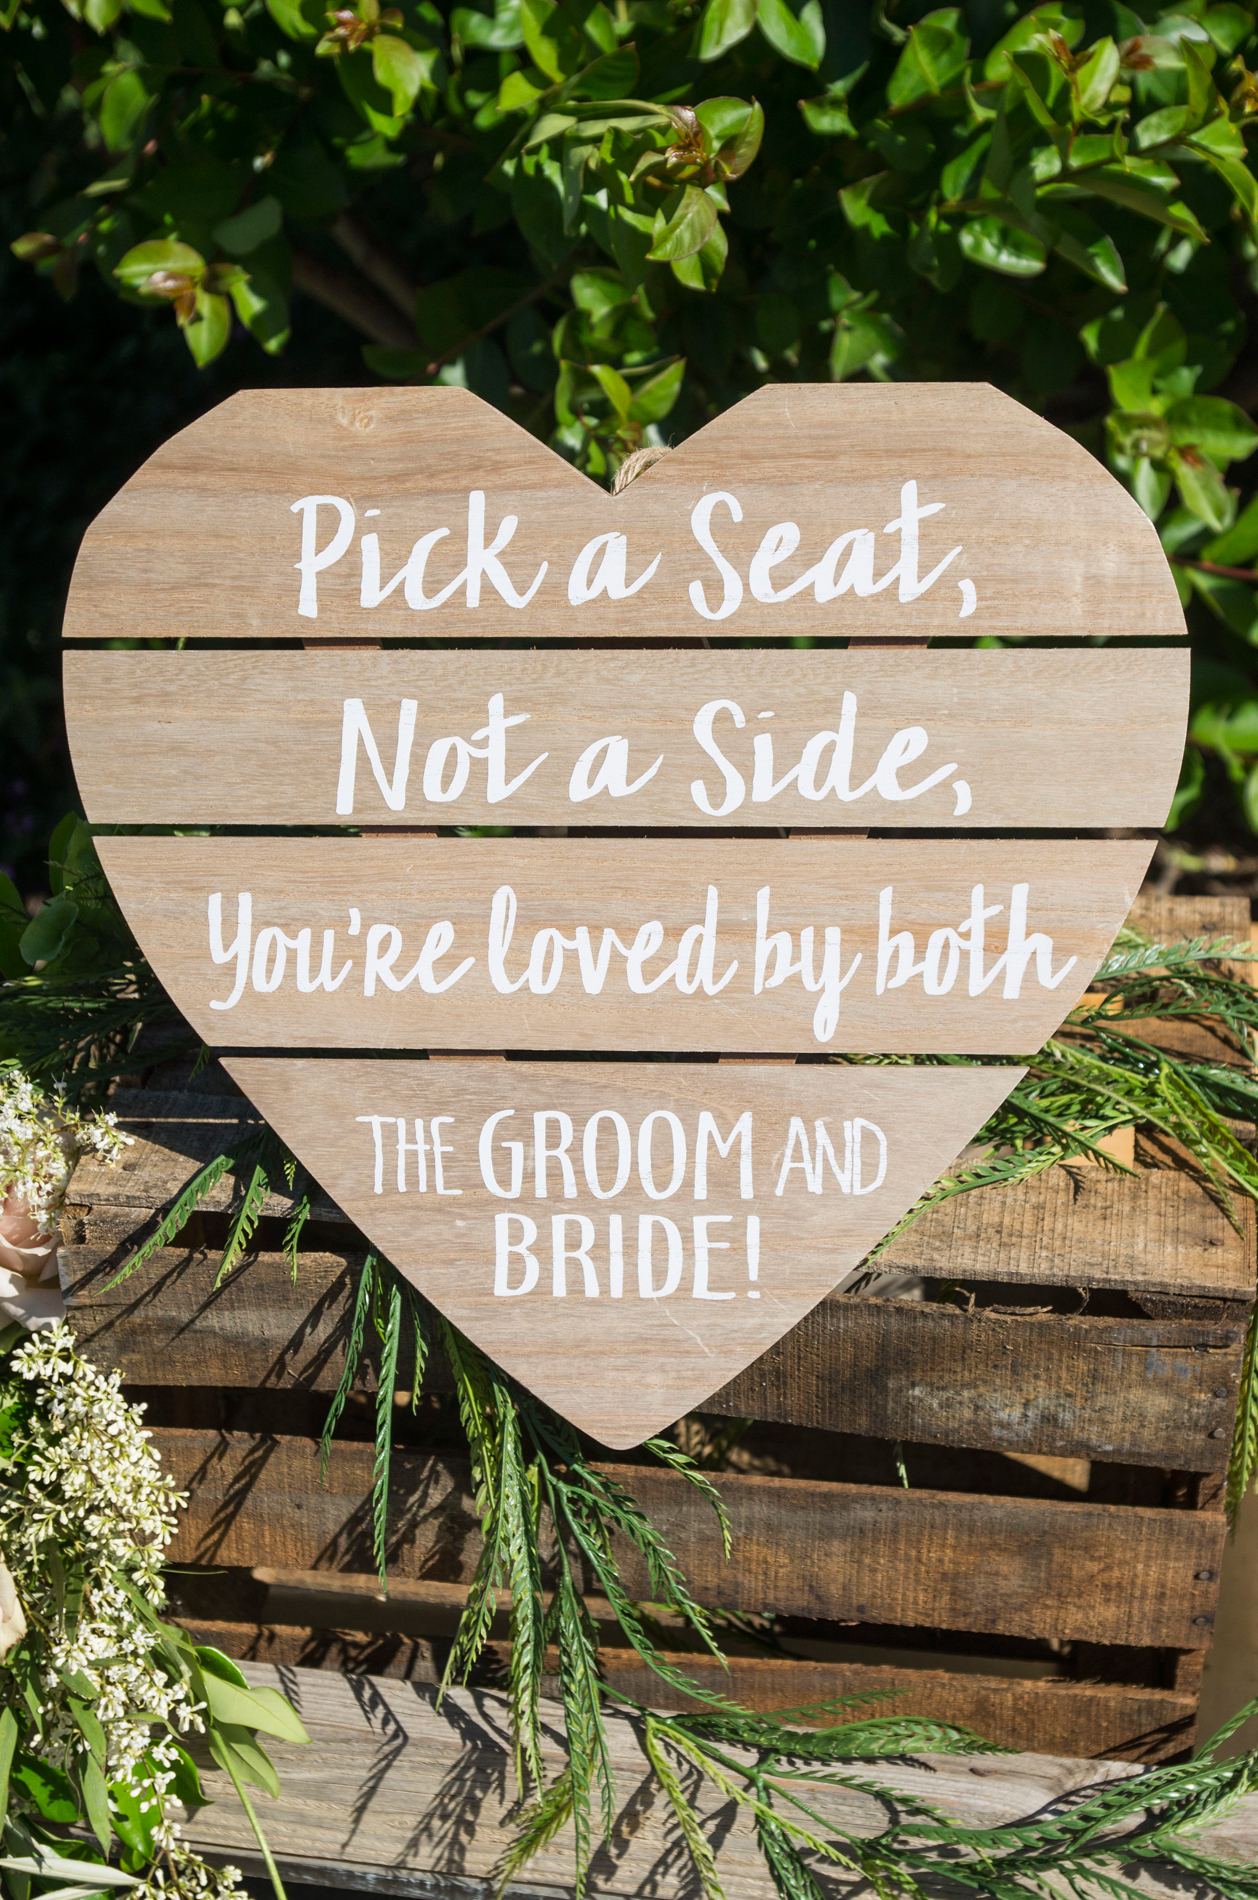 Wooden Wedding Sign - Pick A Seat Not A Side - McCoy Equestrian Center Wedding - Peterson Design & Photography